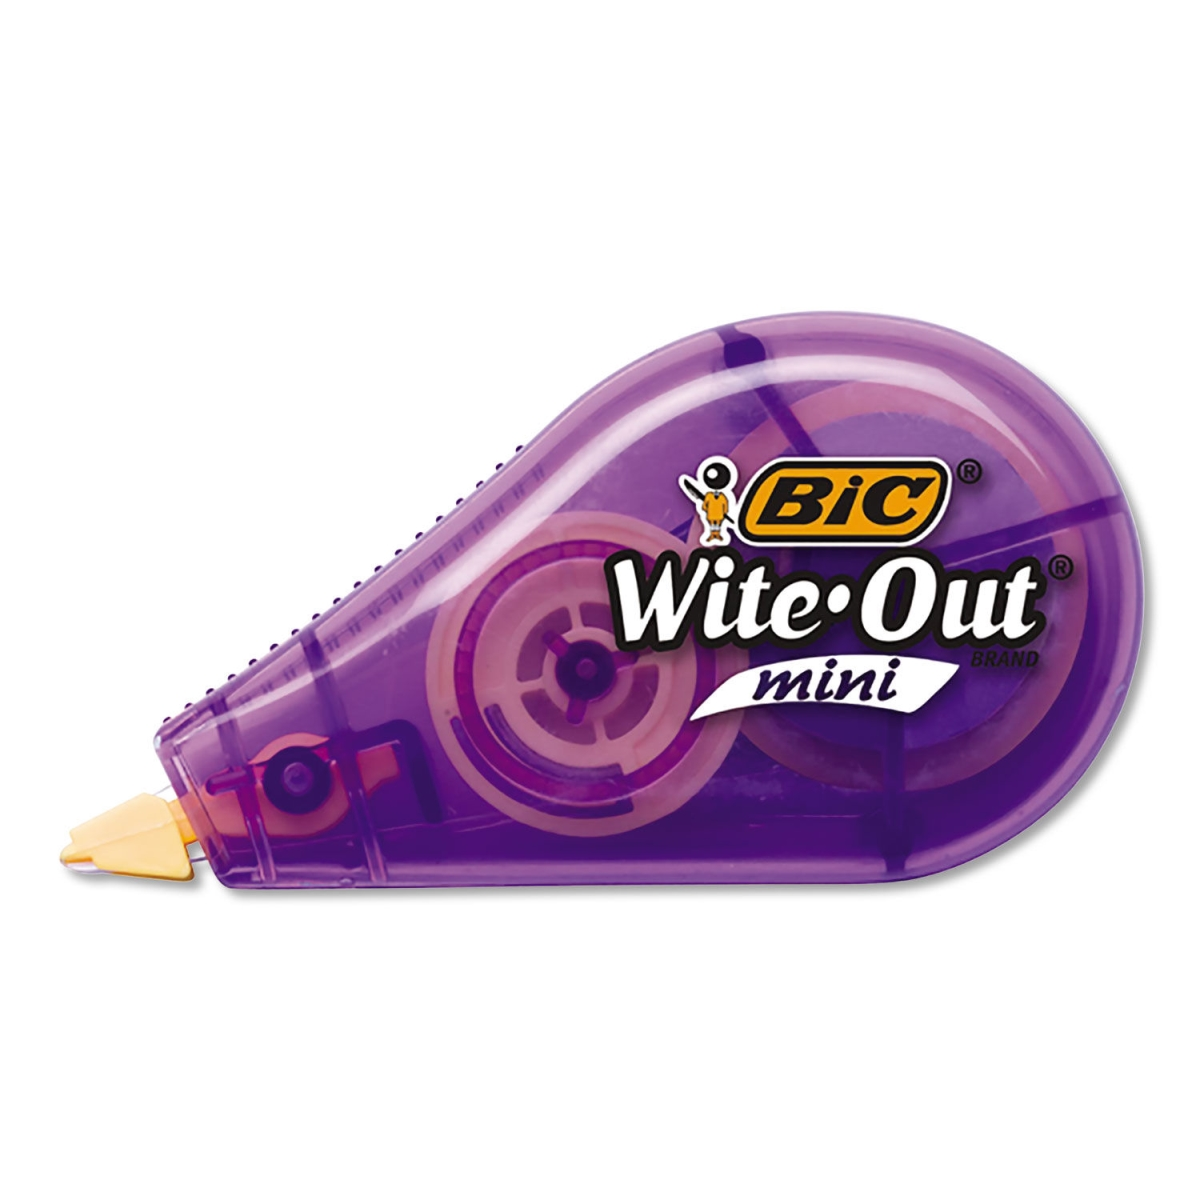 "Wite-Out Brand Mini Correction Tape, Non-Refillable, 1/2"" w x 26.2 ft, Assorted"